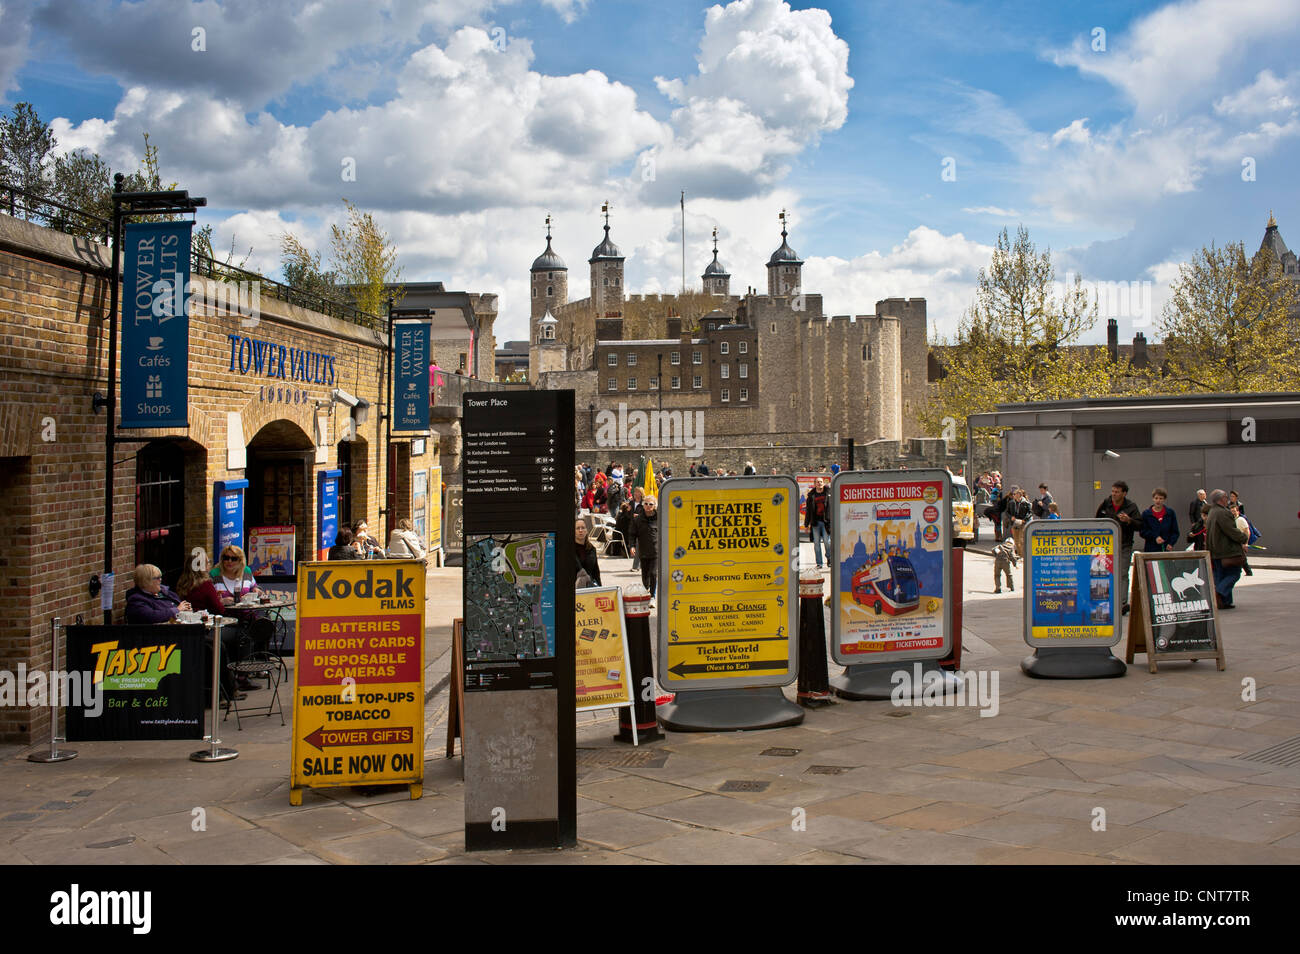 Advertising Signs on the open space at Tower Place close to Tower of London with the Tower in the background - Stock Image